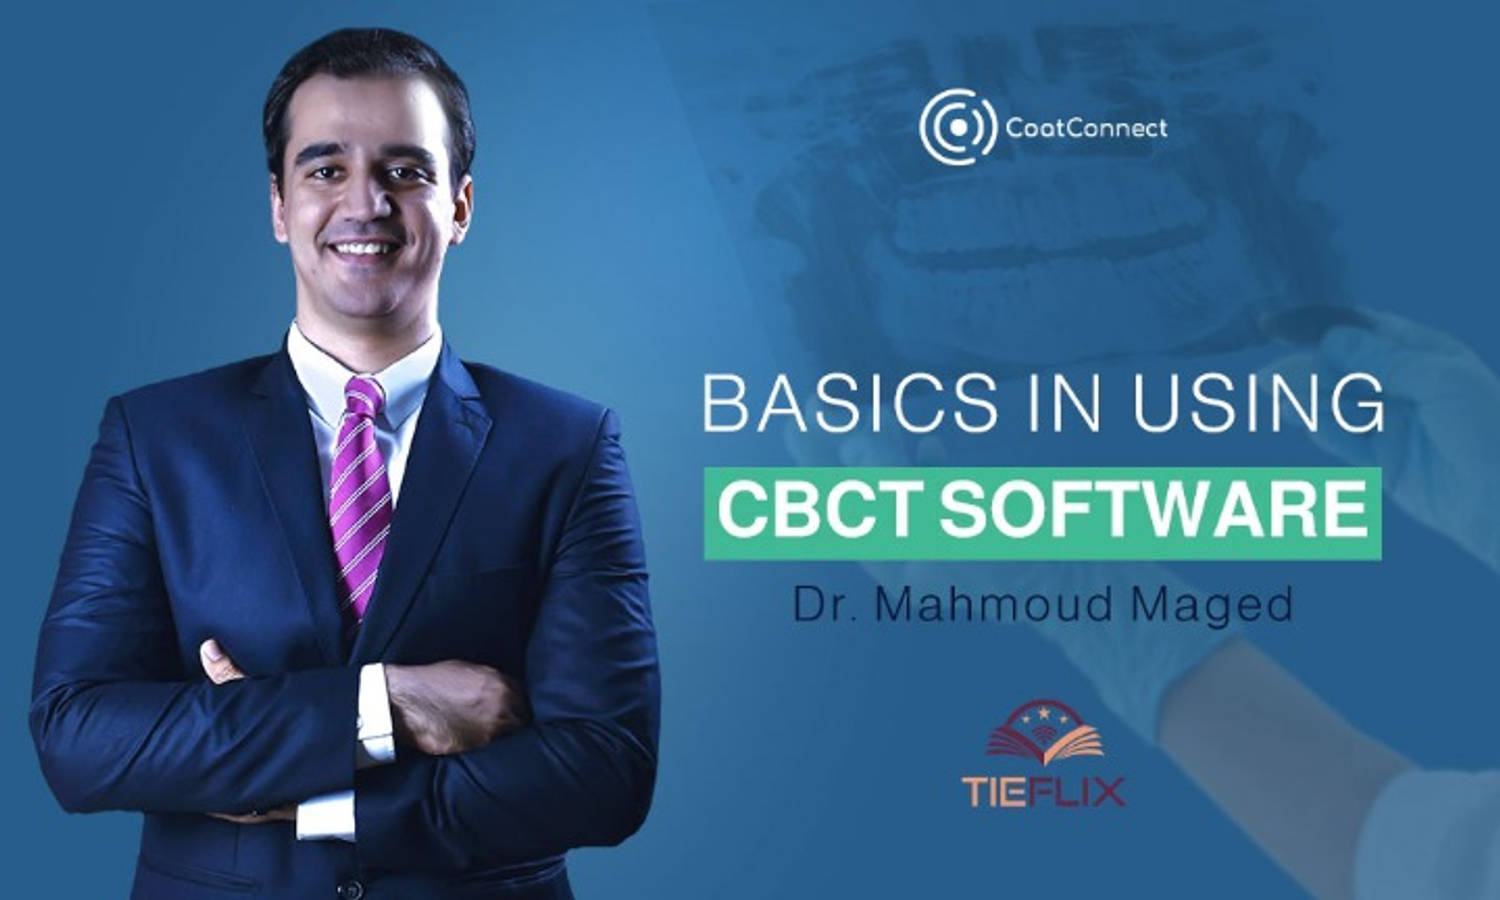 Basics in Using CBCT Software